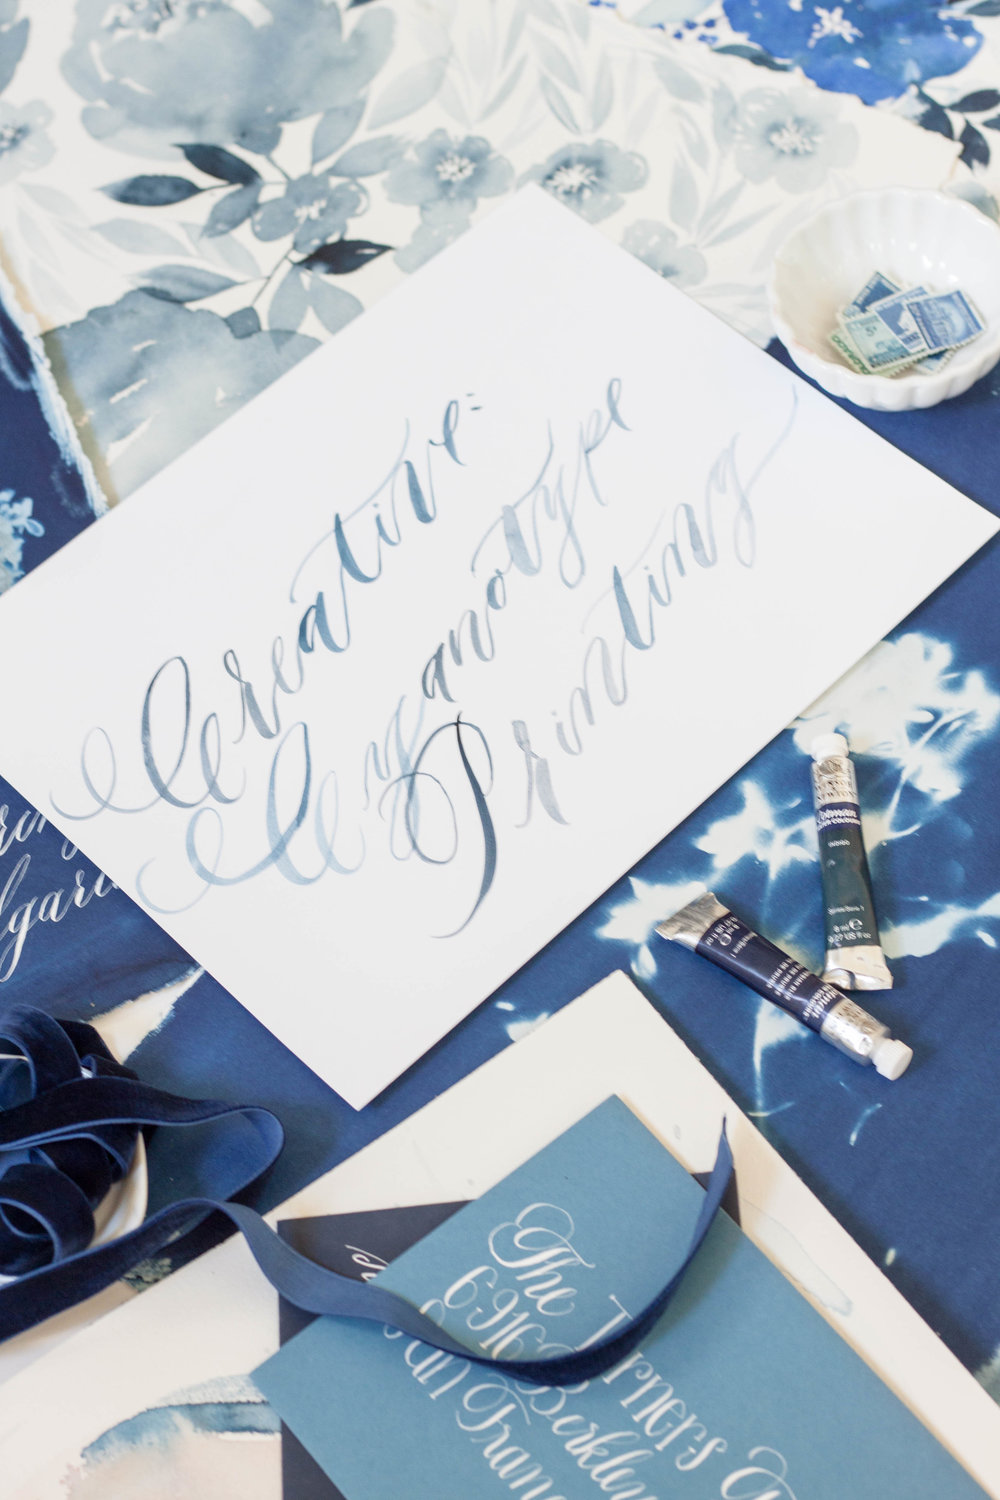 Design House Prep School | A School for Creatives | Cyanotype Botanicals